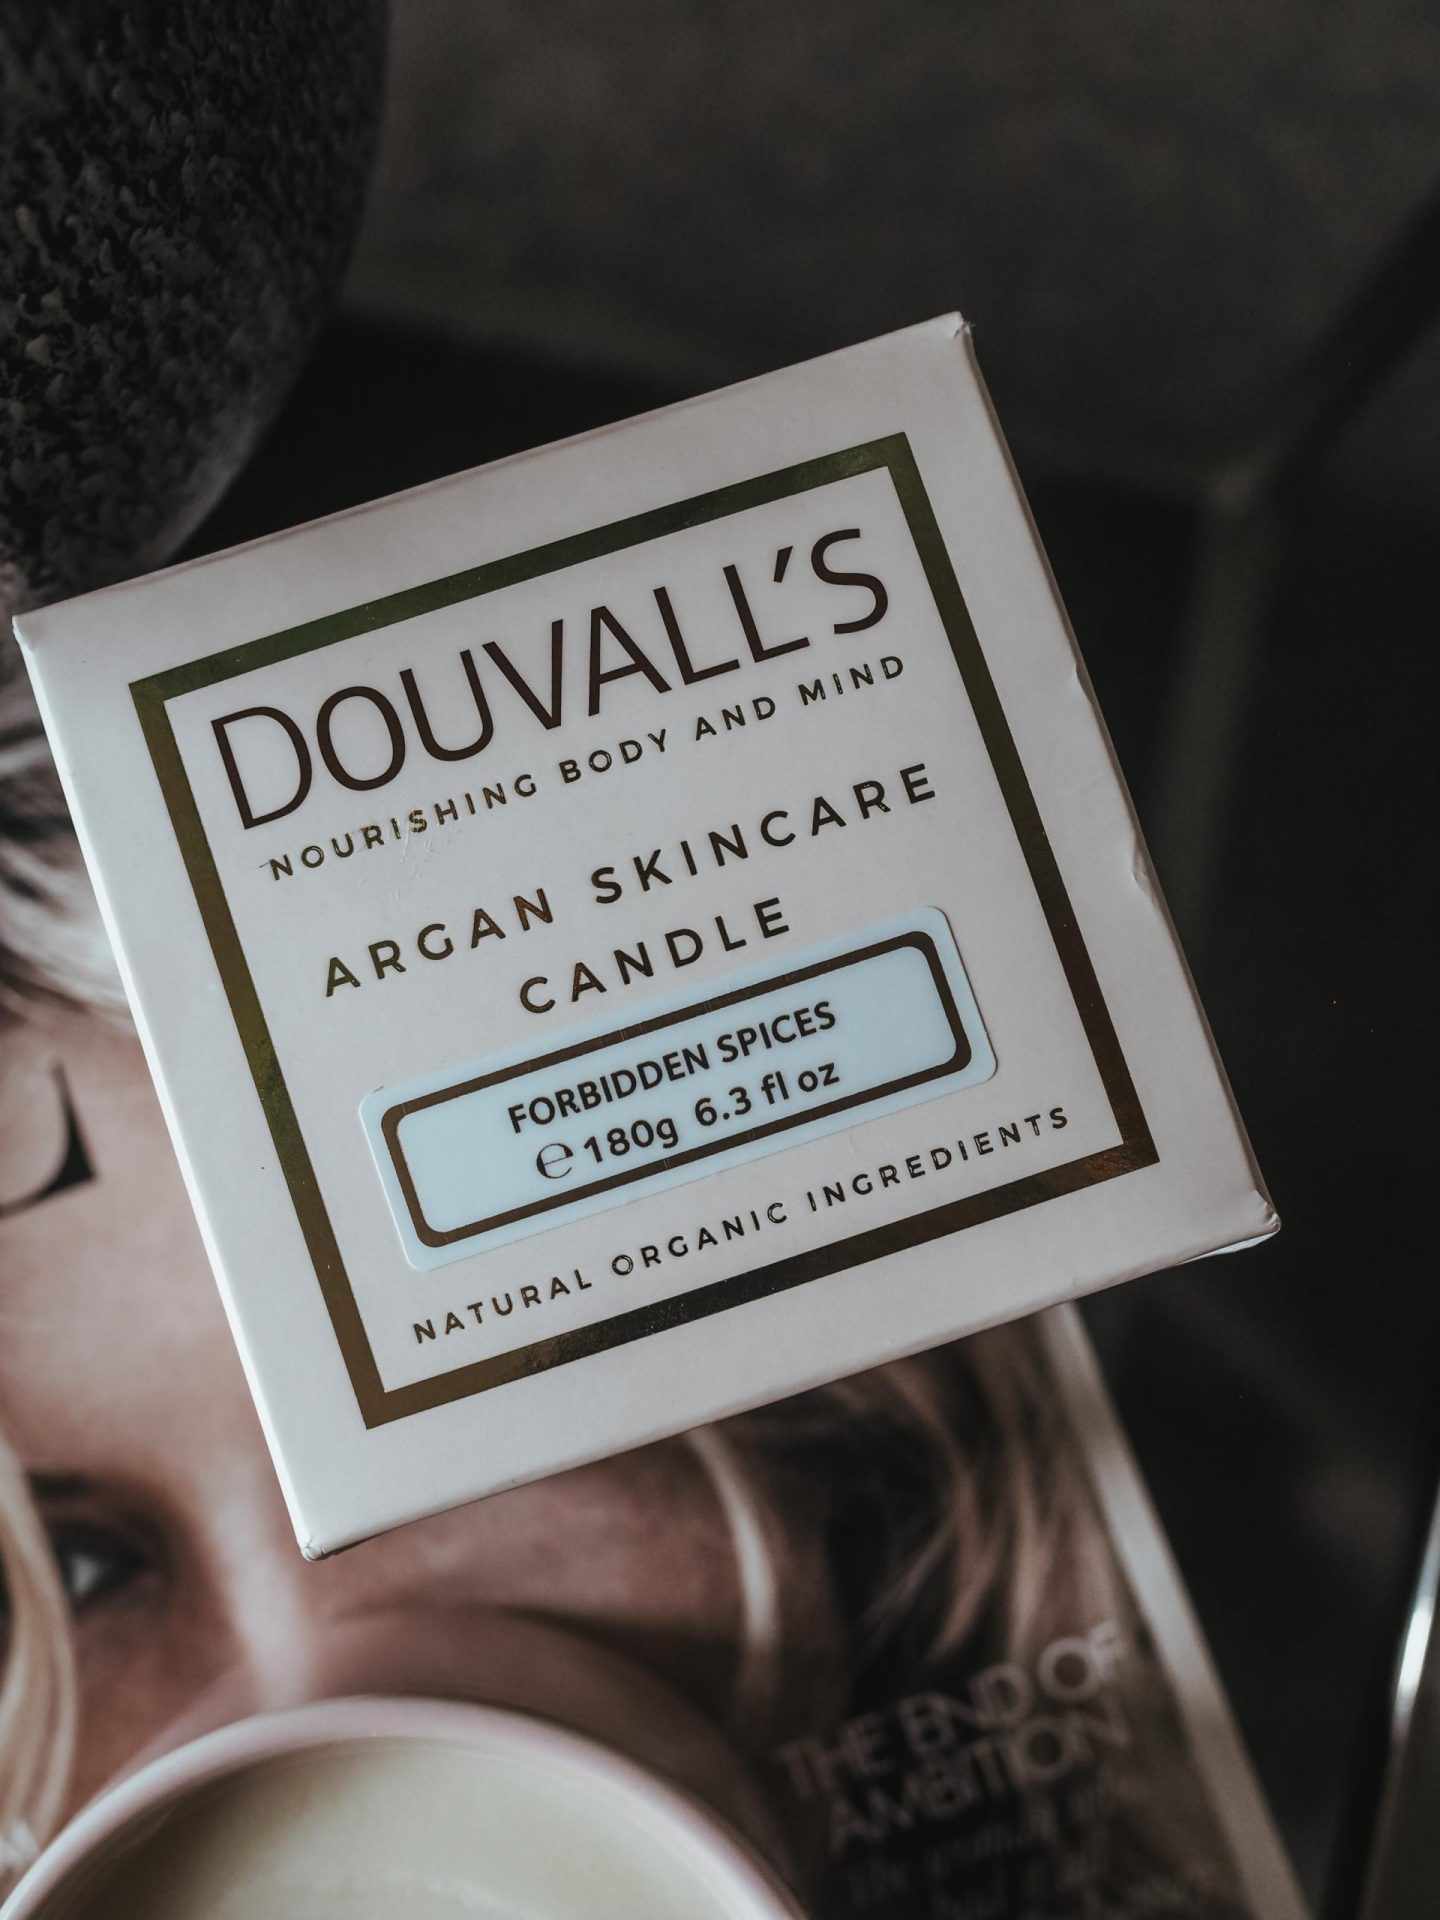 Douvall's Argan Skincare Candle